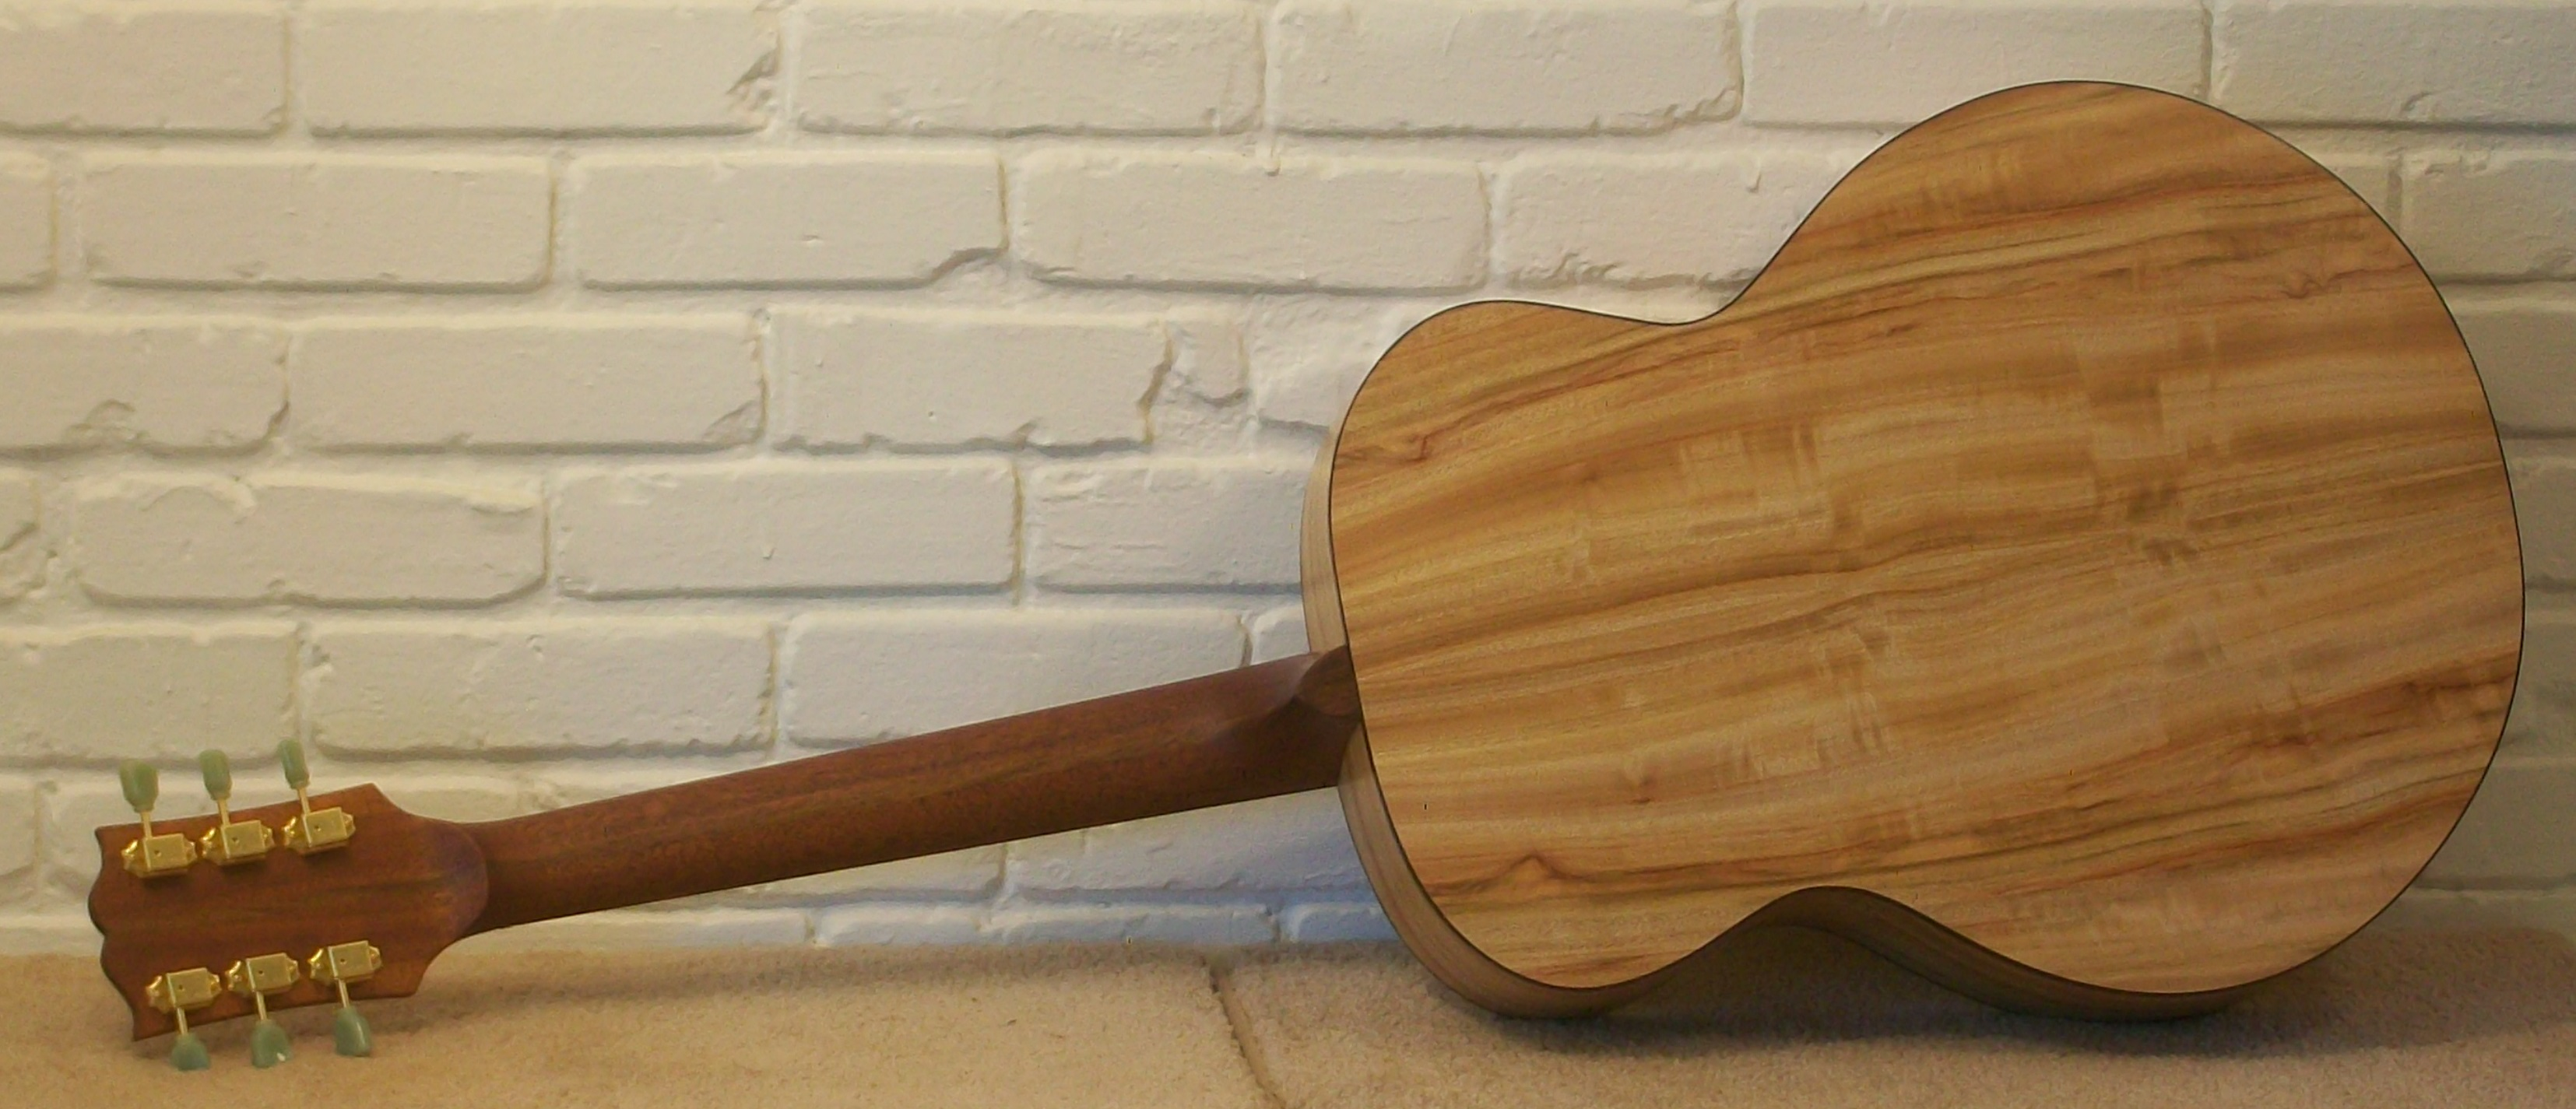 guitar-finished-with-odies-a-gibson-back.jpg